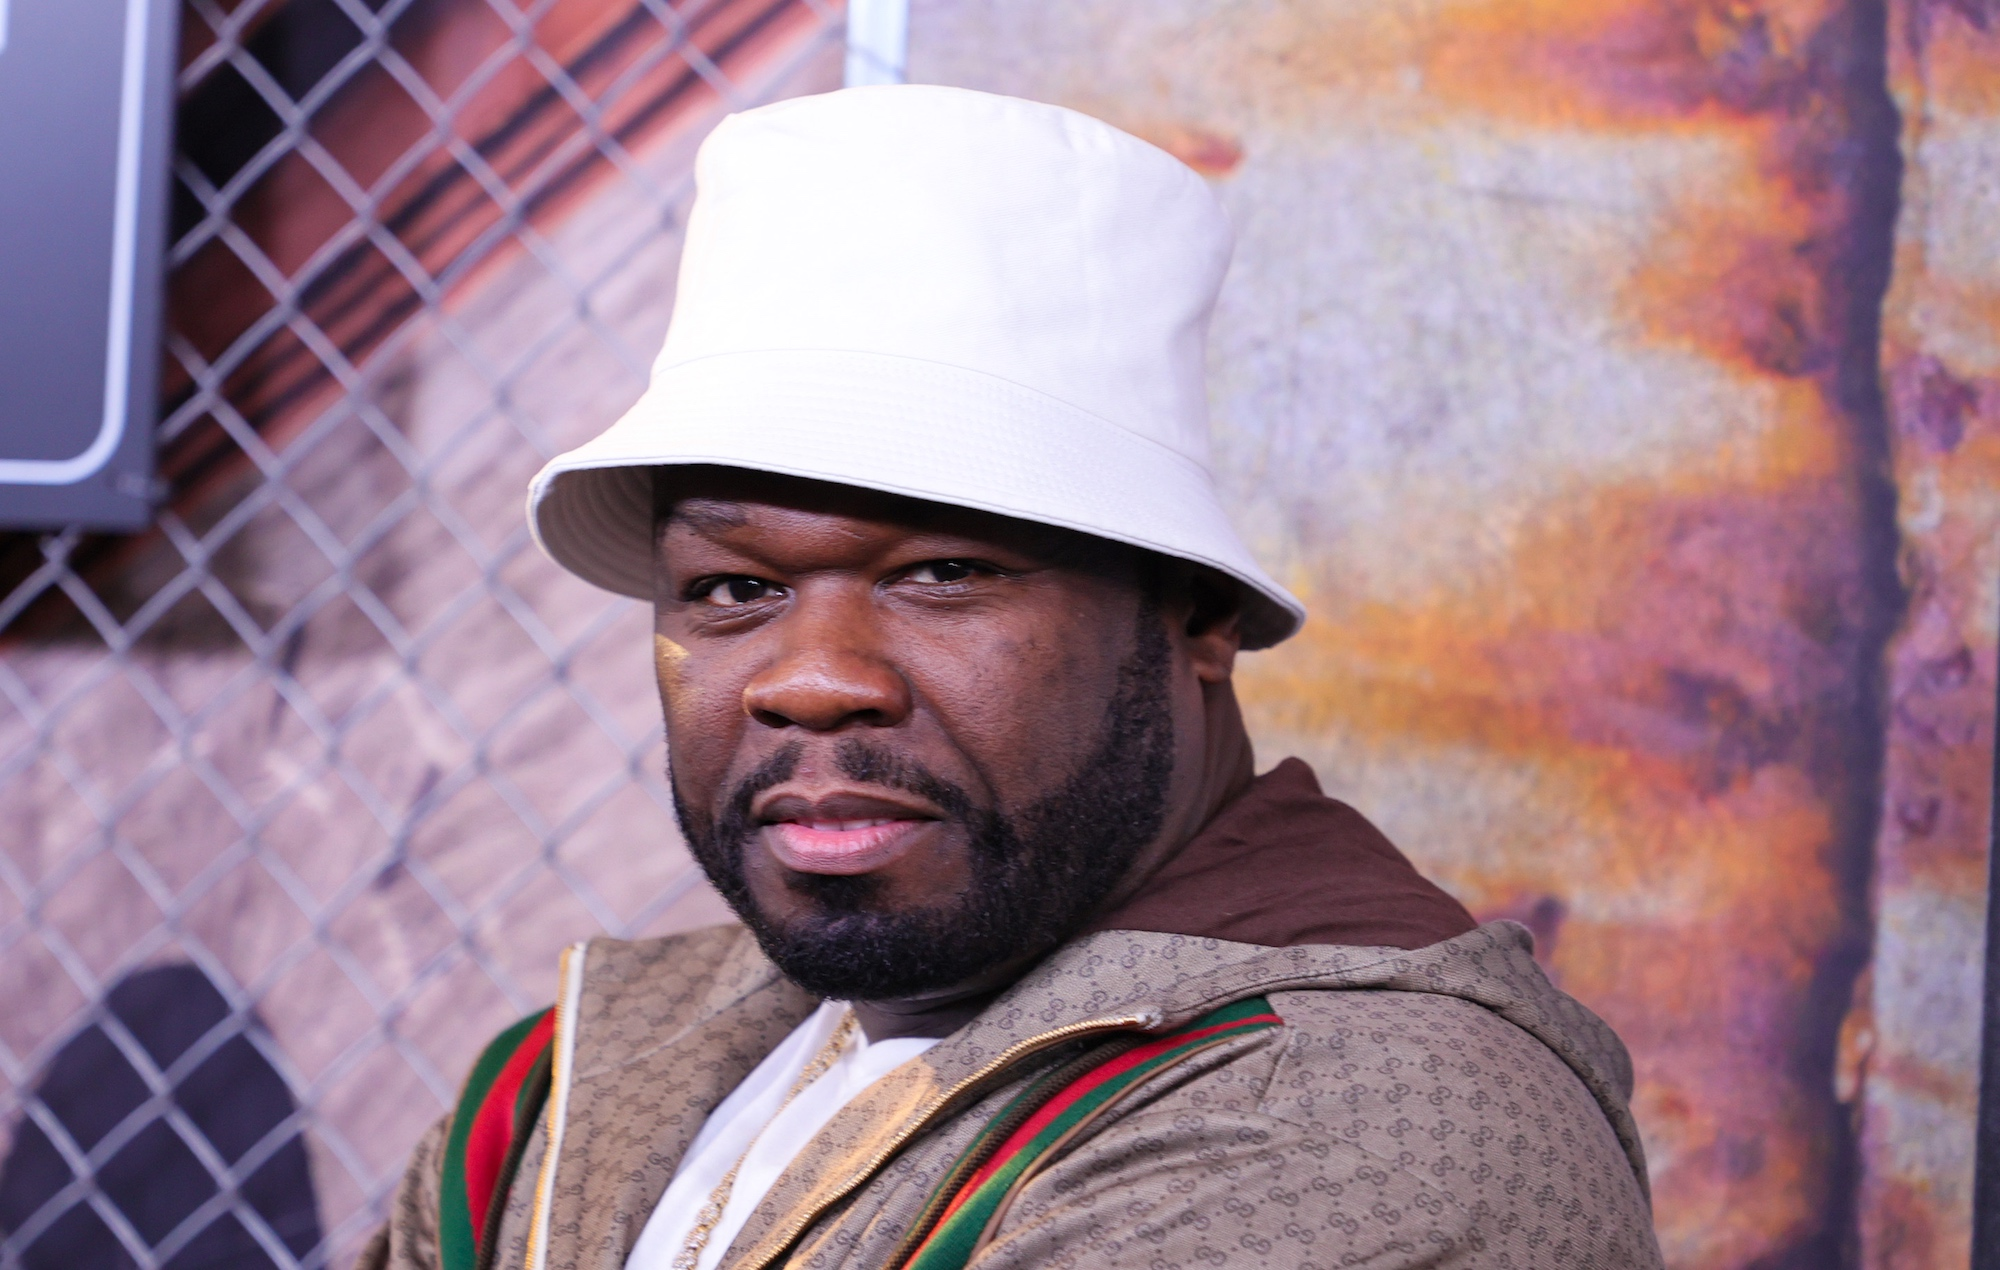 50 Cent at the premiere of 'Power Book III: Raising Kanan'